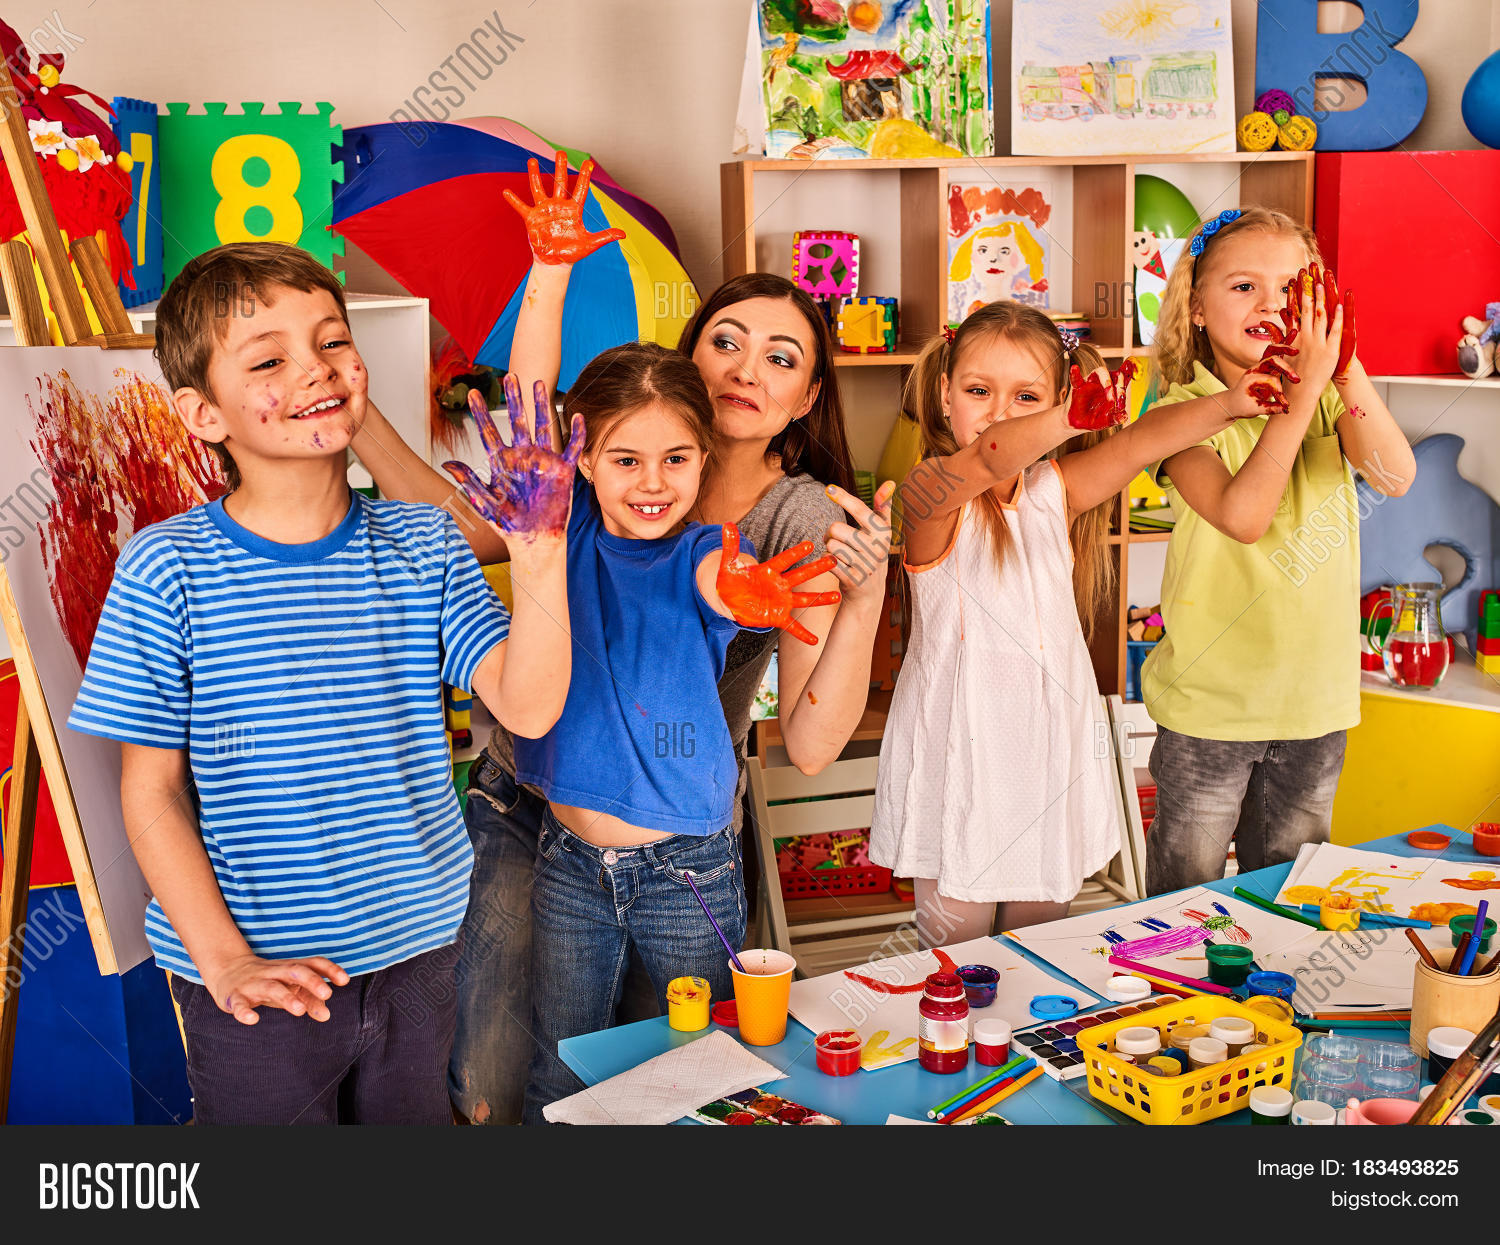 Small students teacher image photo free trial bigstock for Kids painting class